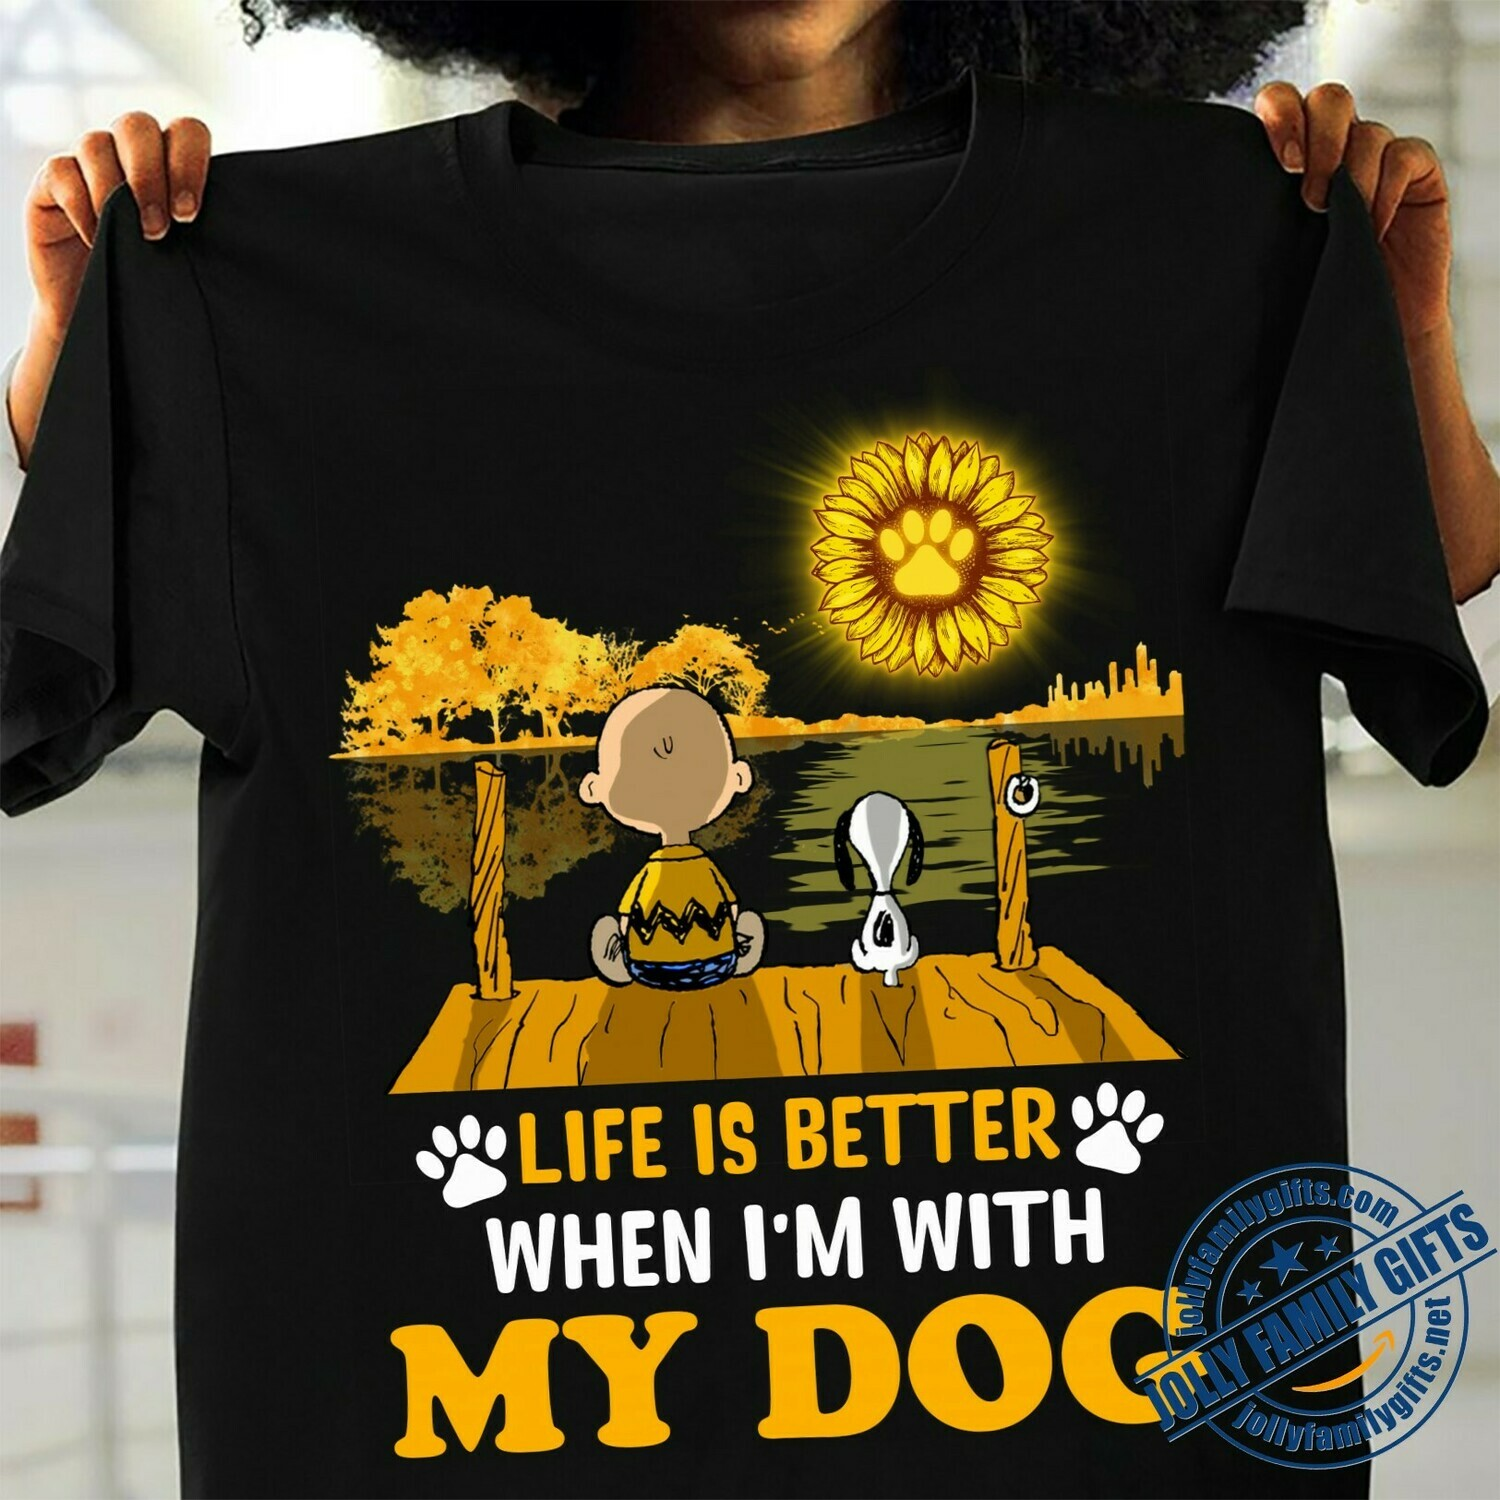 Life is Better when I'm with Dog Snoopy Charlie Brown Sunflower Guitar Lake Shadow The Peanuts Movie fan T-shirt Unisex T-Shirt Hoodie Sweatshirt Sweater Plus Size for Ladies Women Men Kids Youth